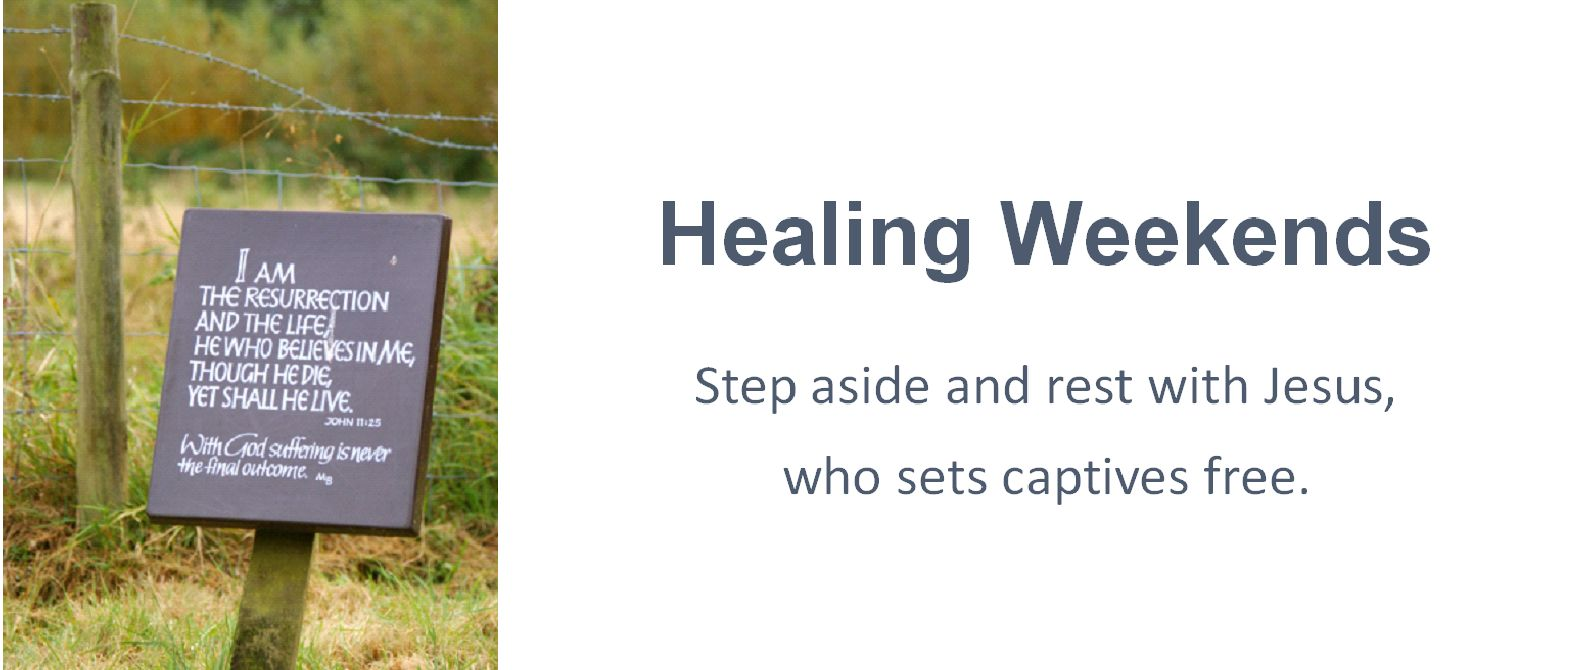 Healing Weekends